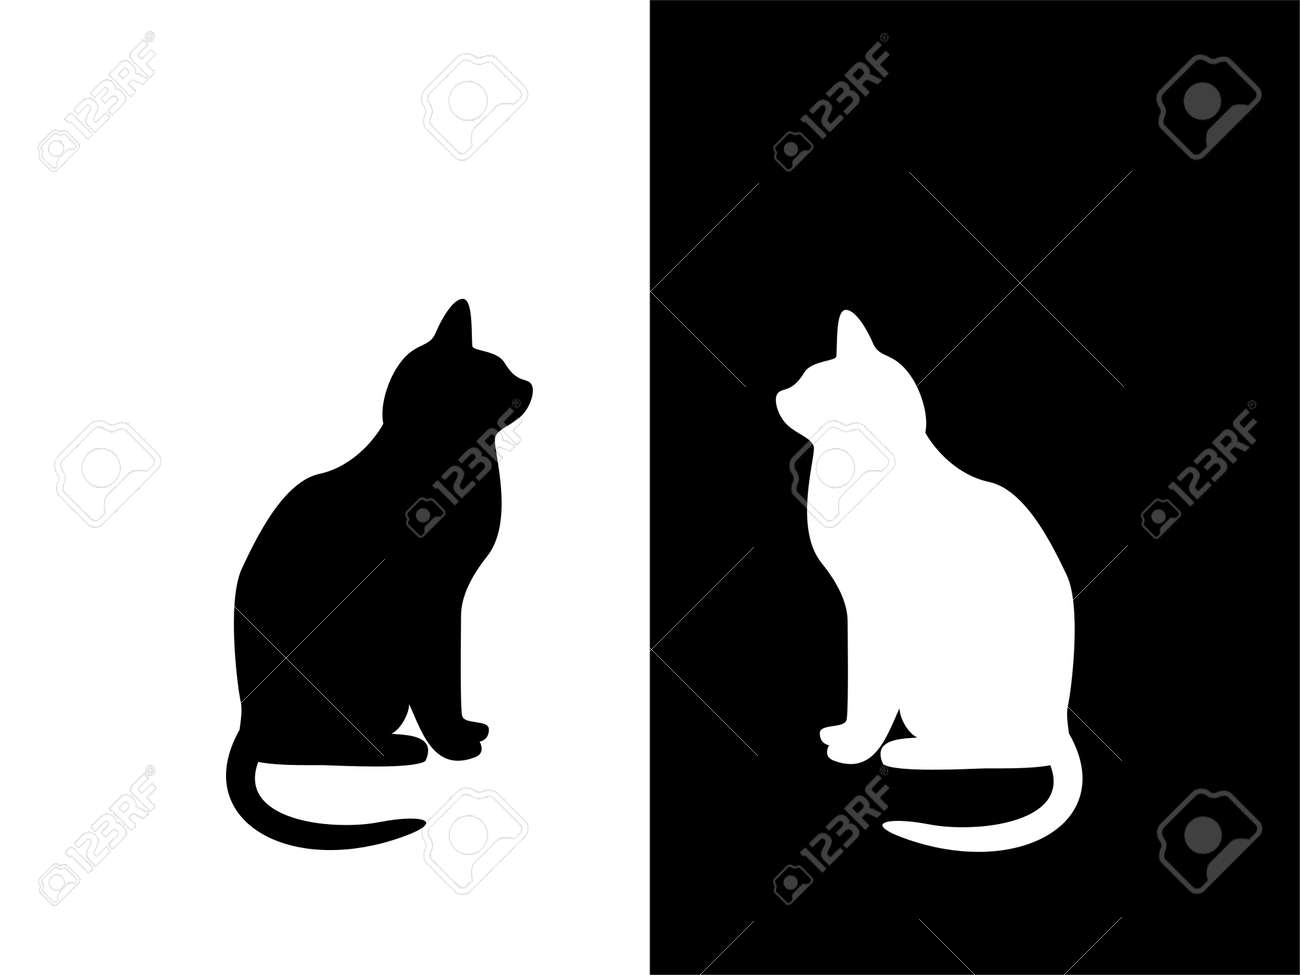 black and white cat characters black and white cat on black and white background. concept ()..